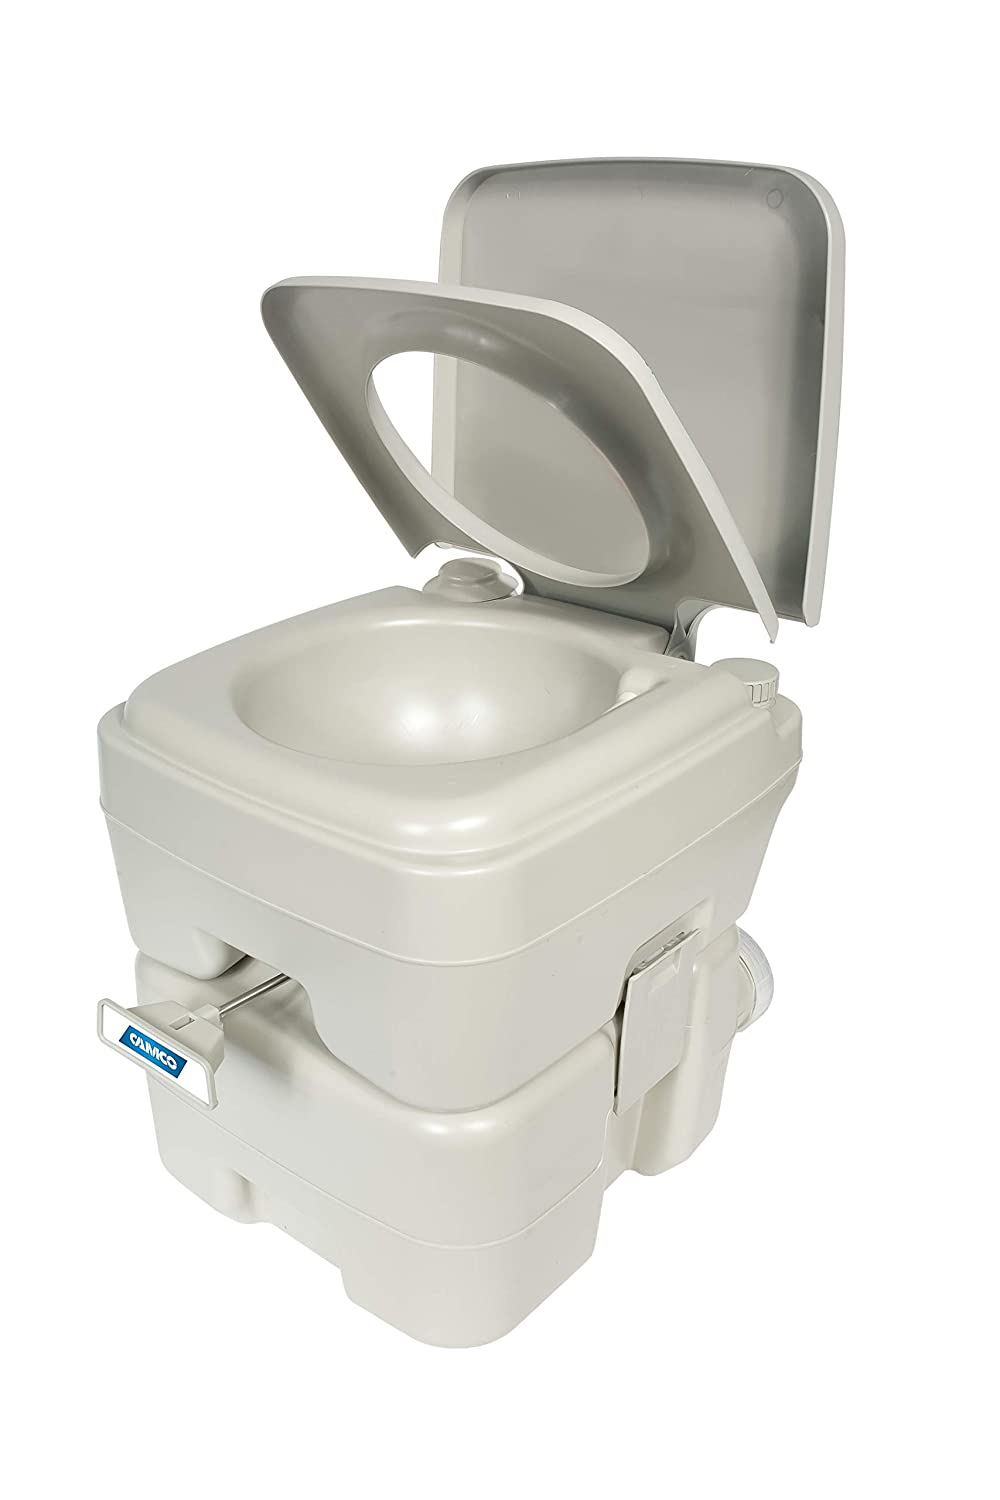 Portable Travel Toilet for campers and RVers